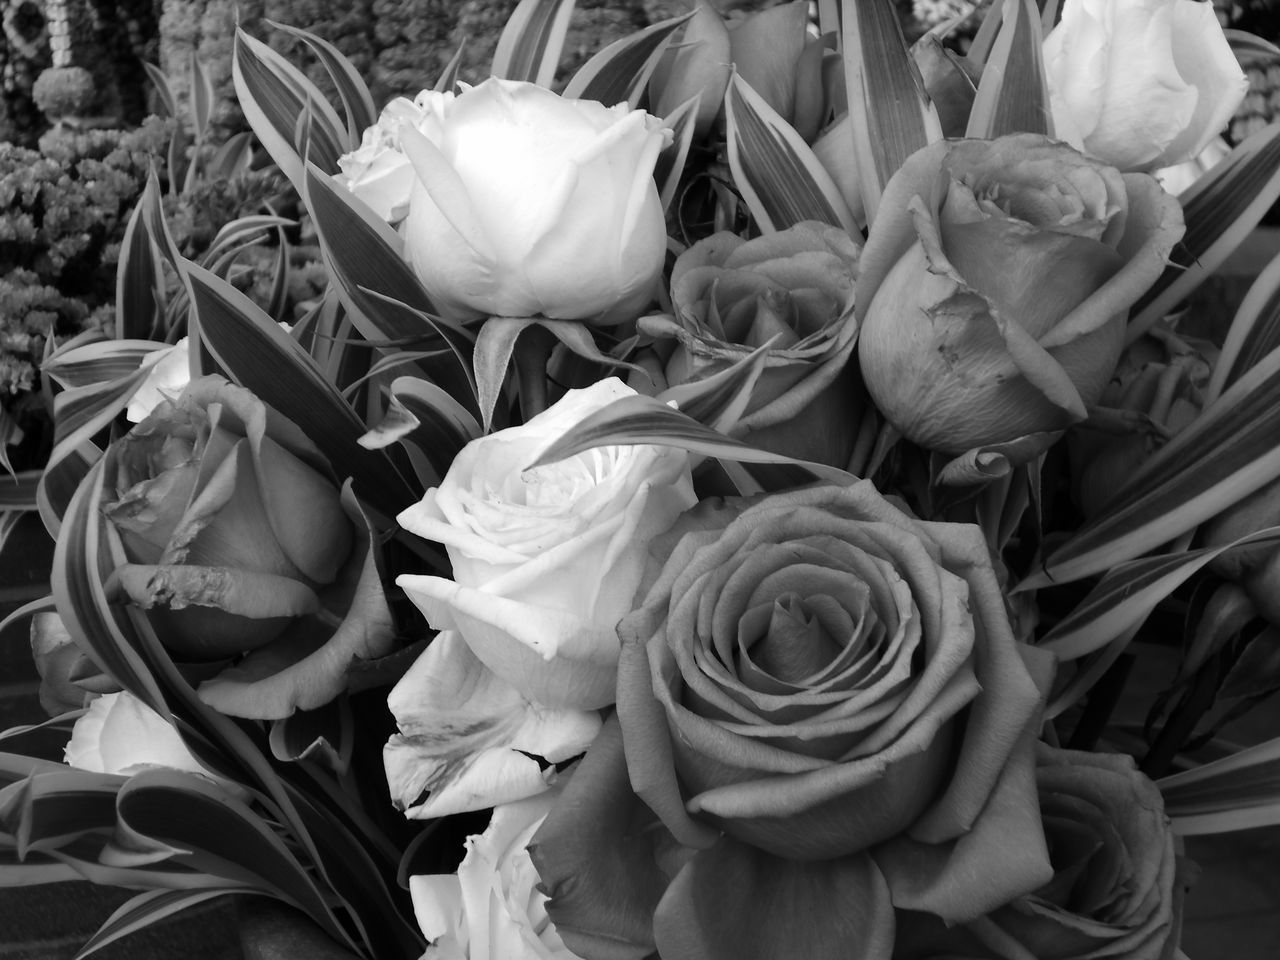 Beauty In Nature Black And White Photography Bouquet Close-up Day Flower Flower Head Freshness Outdoors Roses Flowers